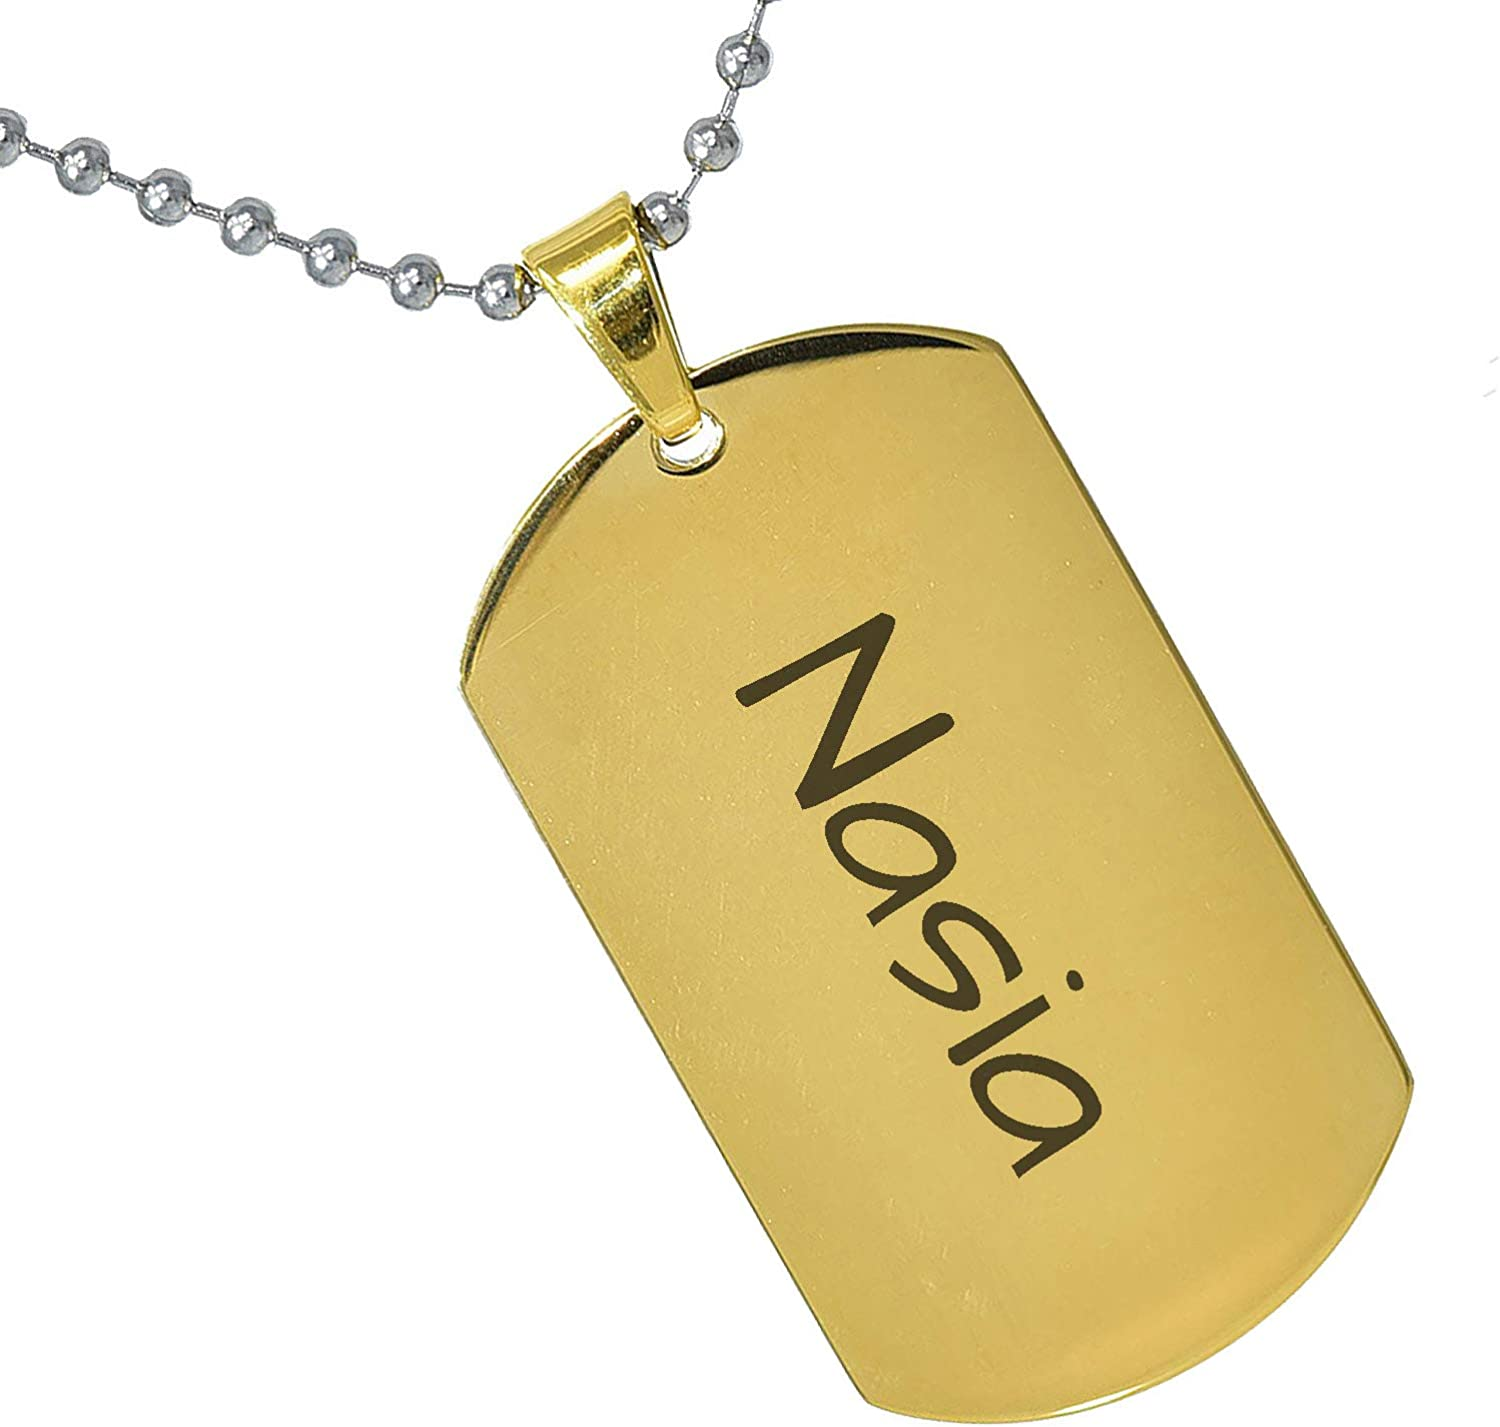 Stainless Steel Silver Gold Black Rose Gold Color Baby Name Nasia Engraved Personalized Gifts For Son Daughter Boyfriend Girlfriend Initial Customizable Pendant Necklace Dog Tags 24 Ball Chain